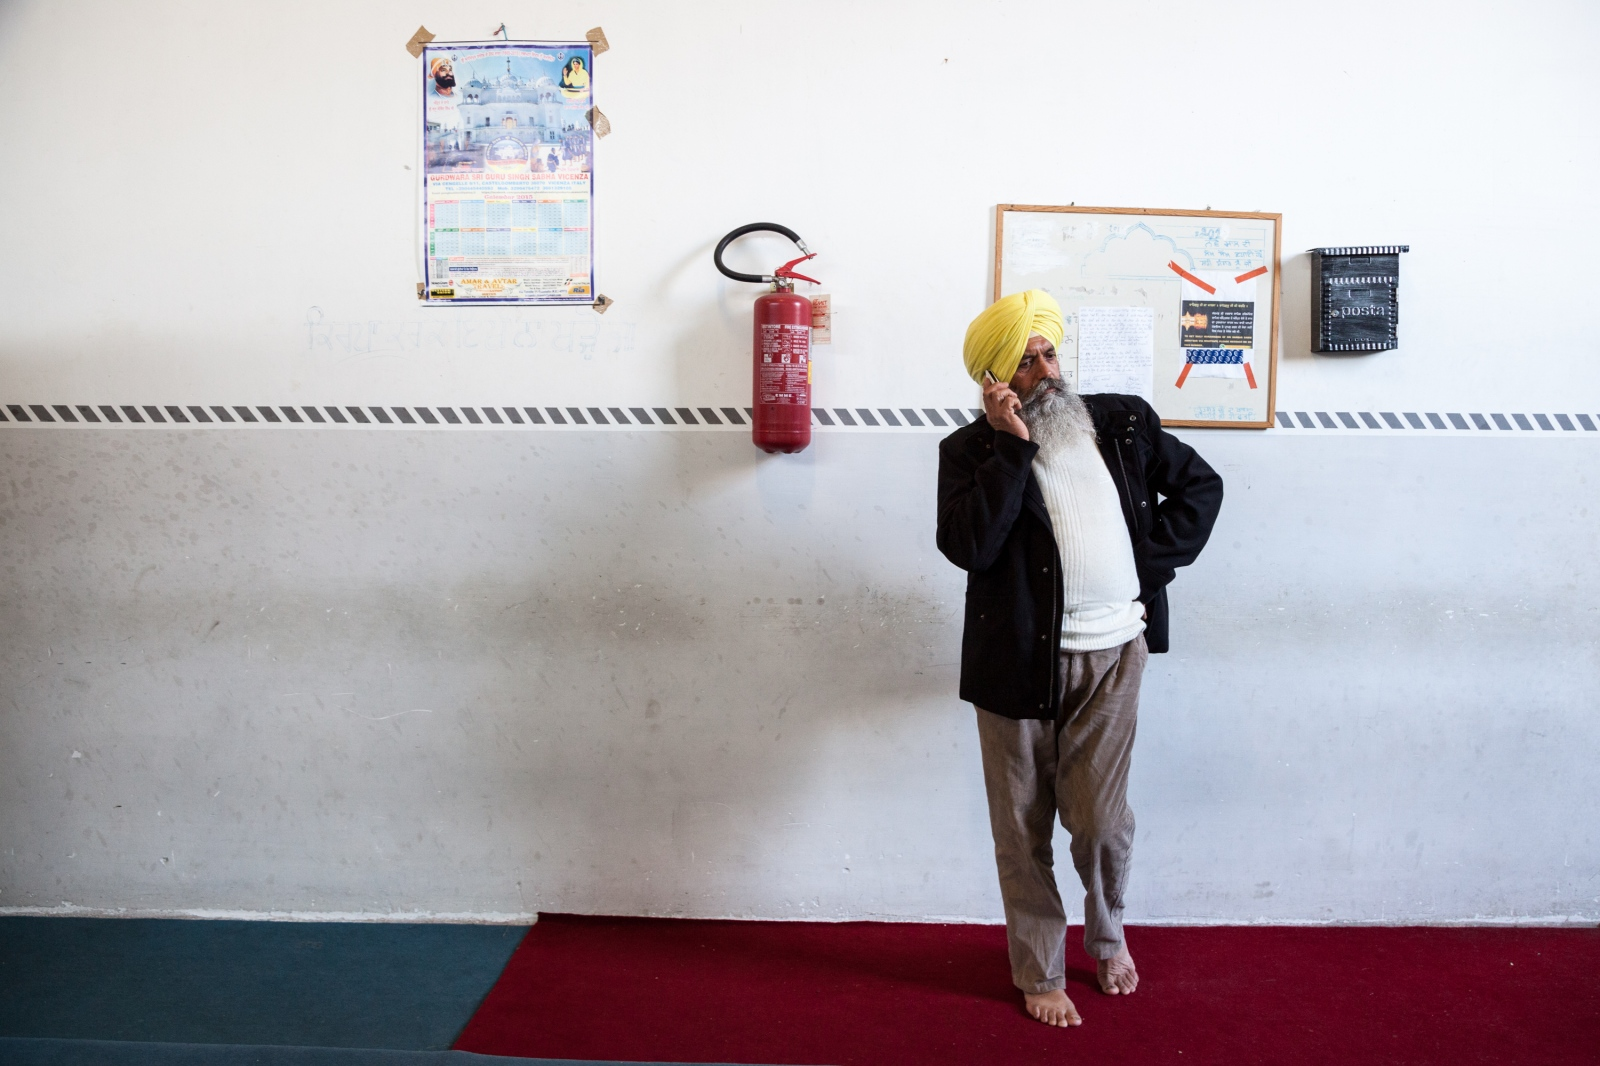 Inside a Sikh temple in the Massimina neighborhood of northern Rome, a man takes a break from the Sunday celebration.